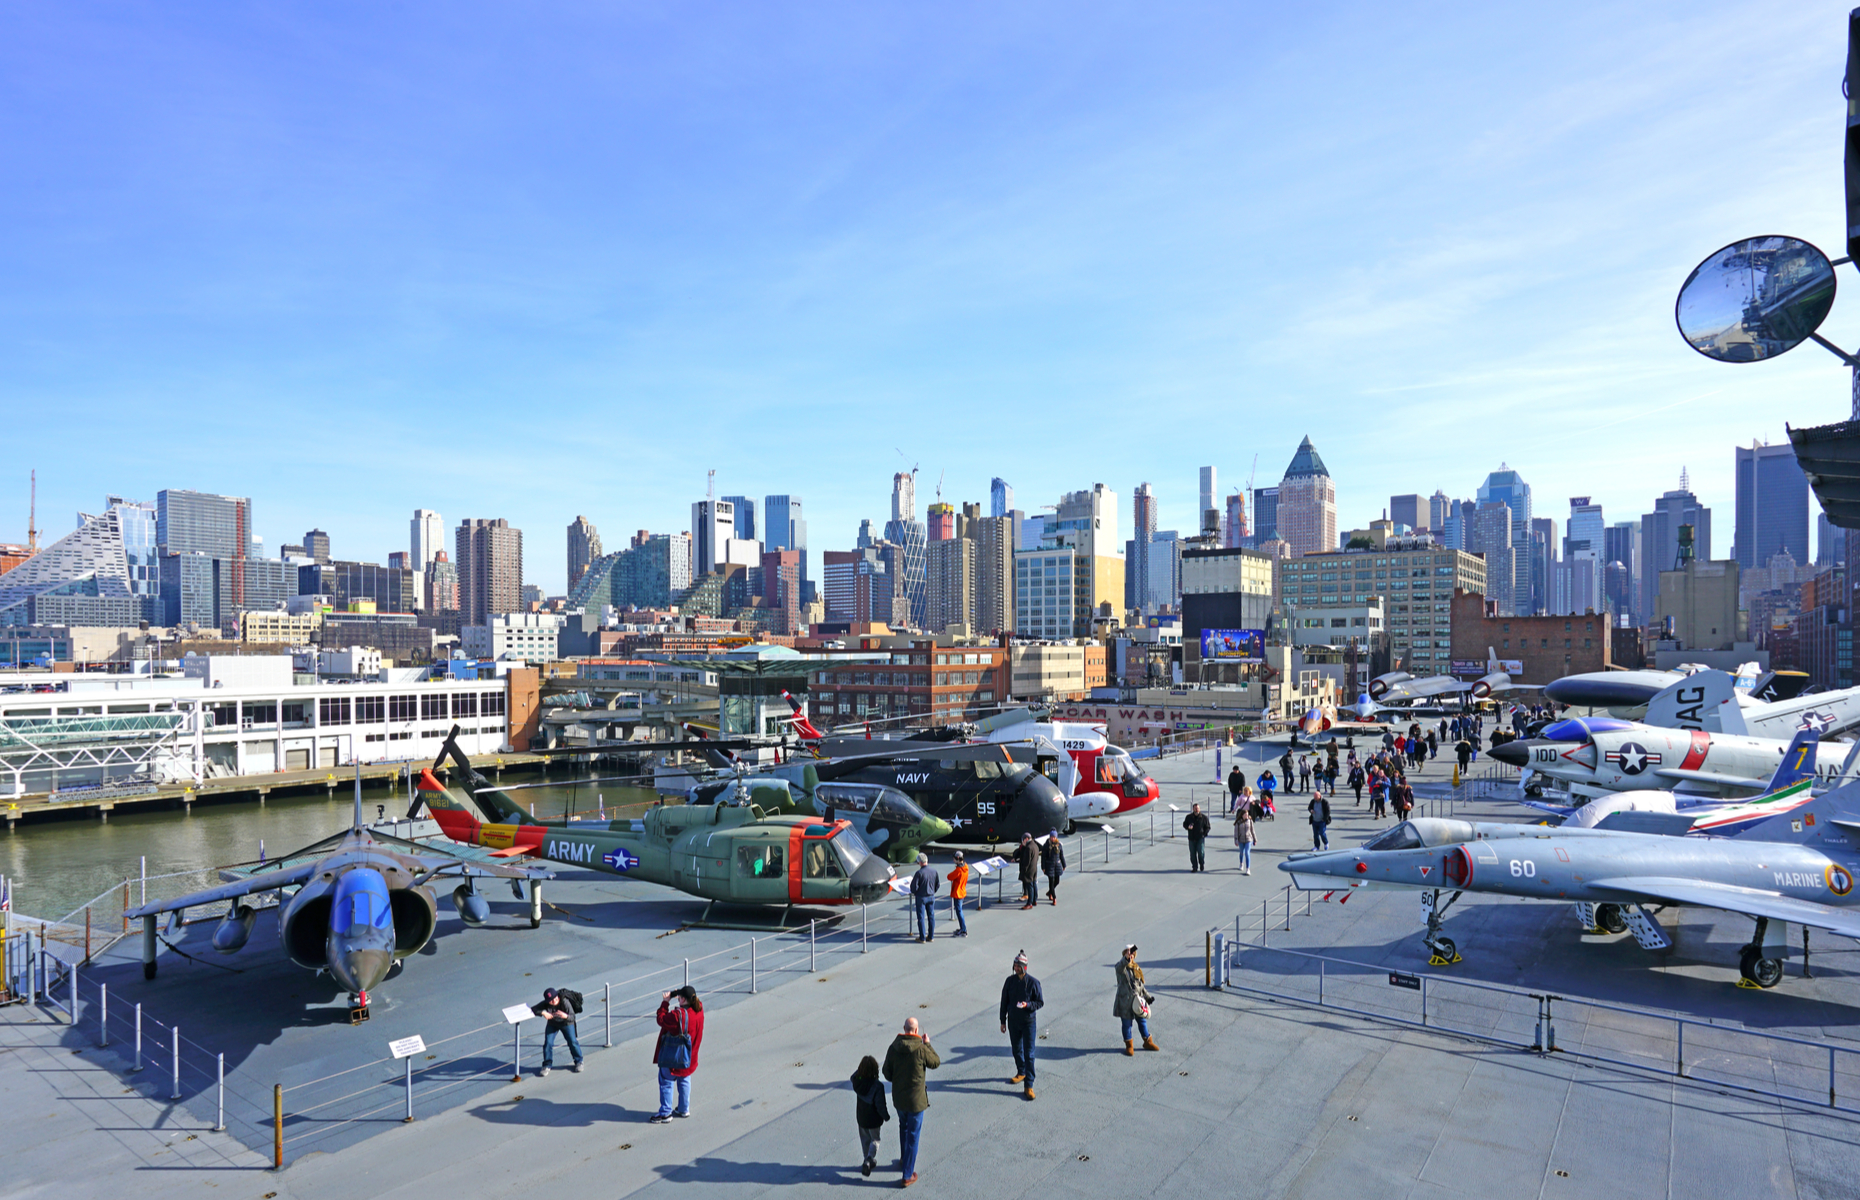 Intrepid Sea, Air and Space Museum